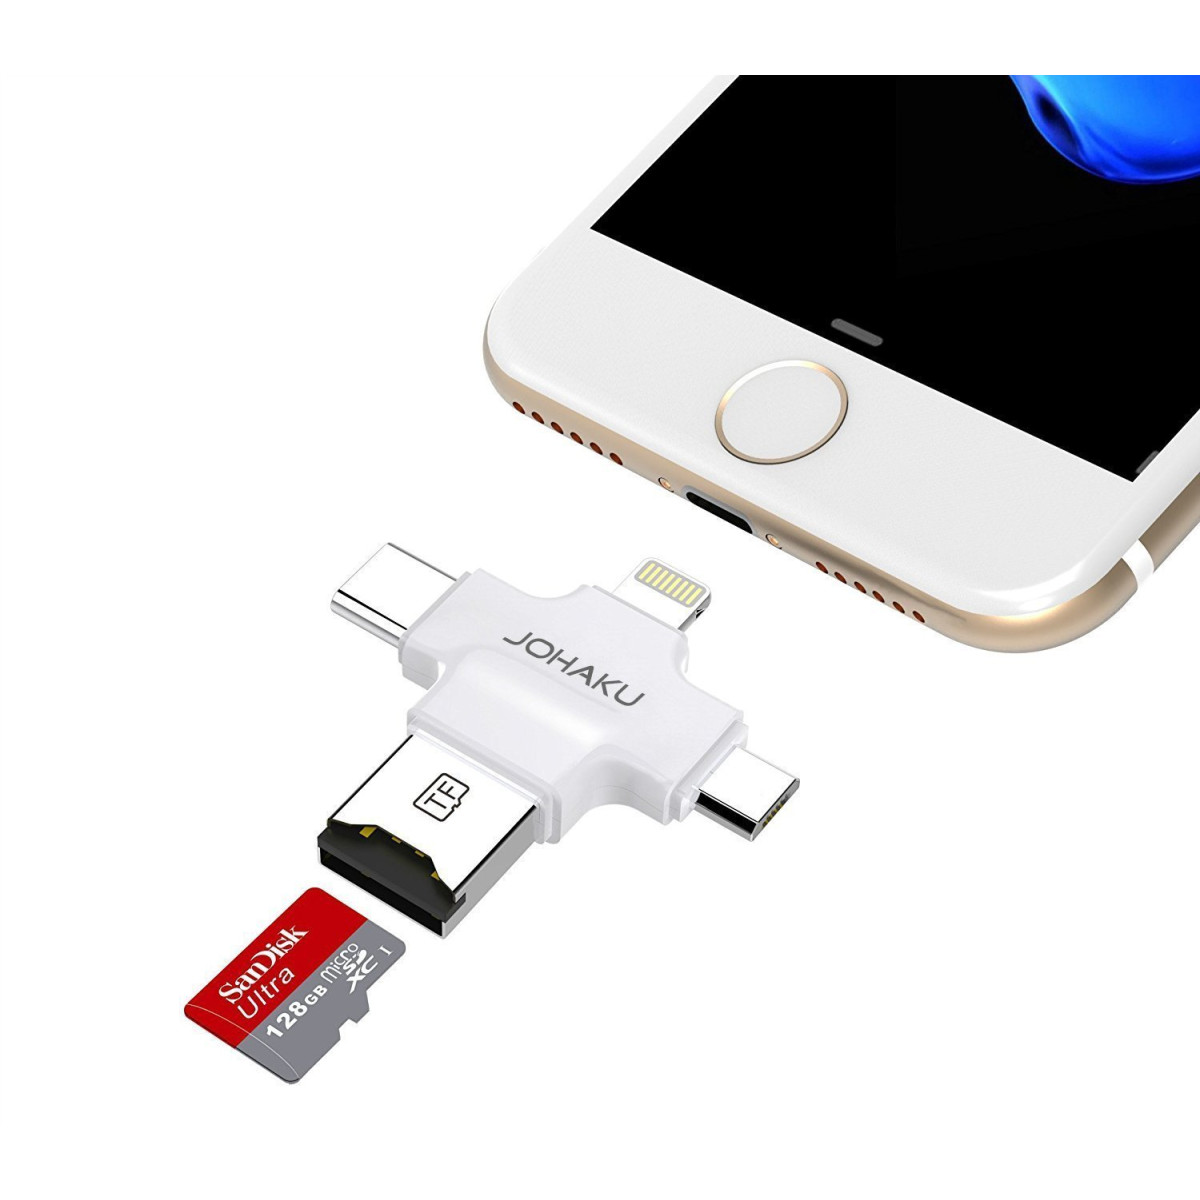 JOHAKU Card Reader, 4 in 1 Micro SD Card Reader with Type C USB Connector  OTG HUB Adapter, TF Flash Memory Card Readers For iPhone iOS/Android USB2 0